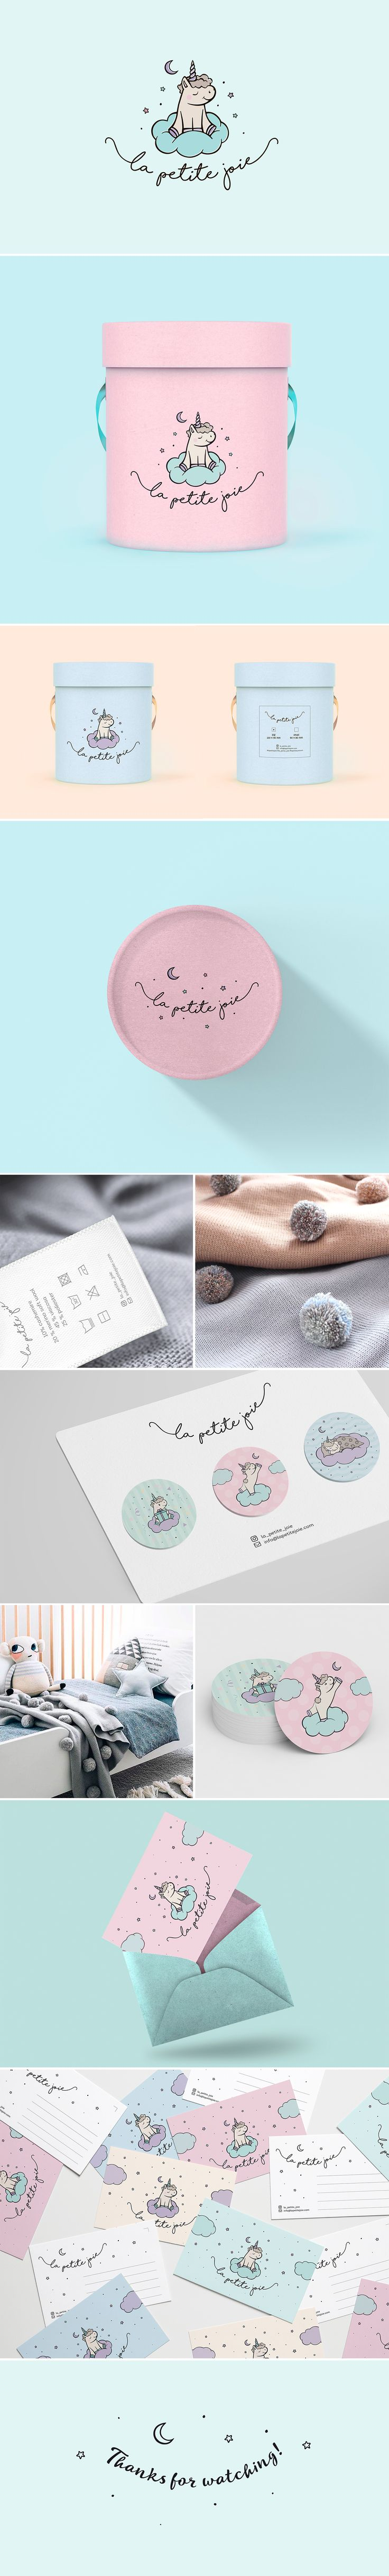 La Petite Joie on Behance PD